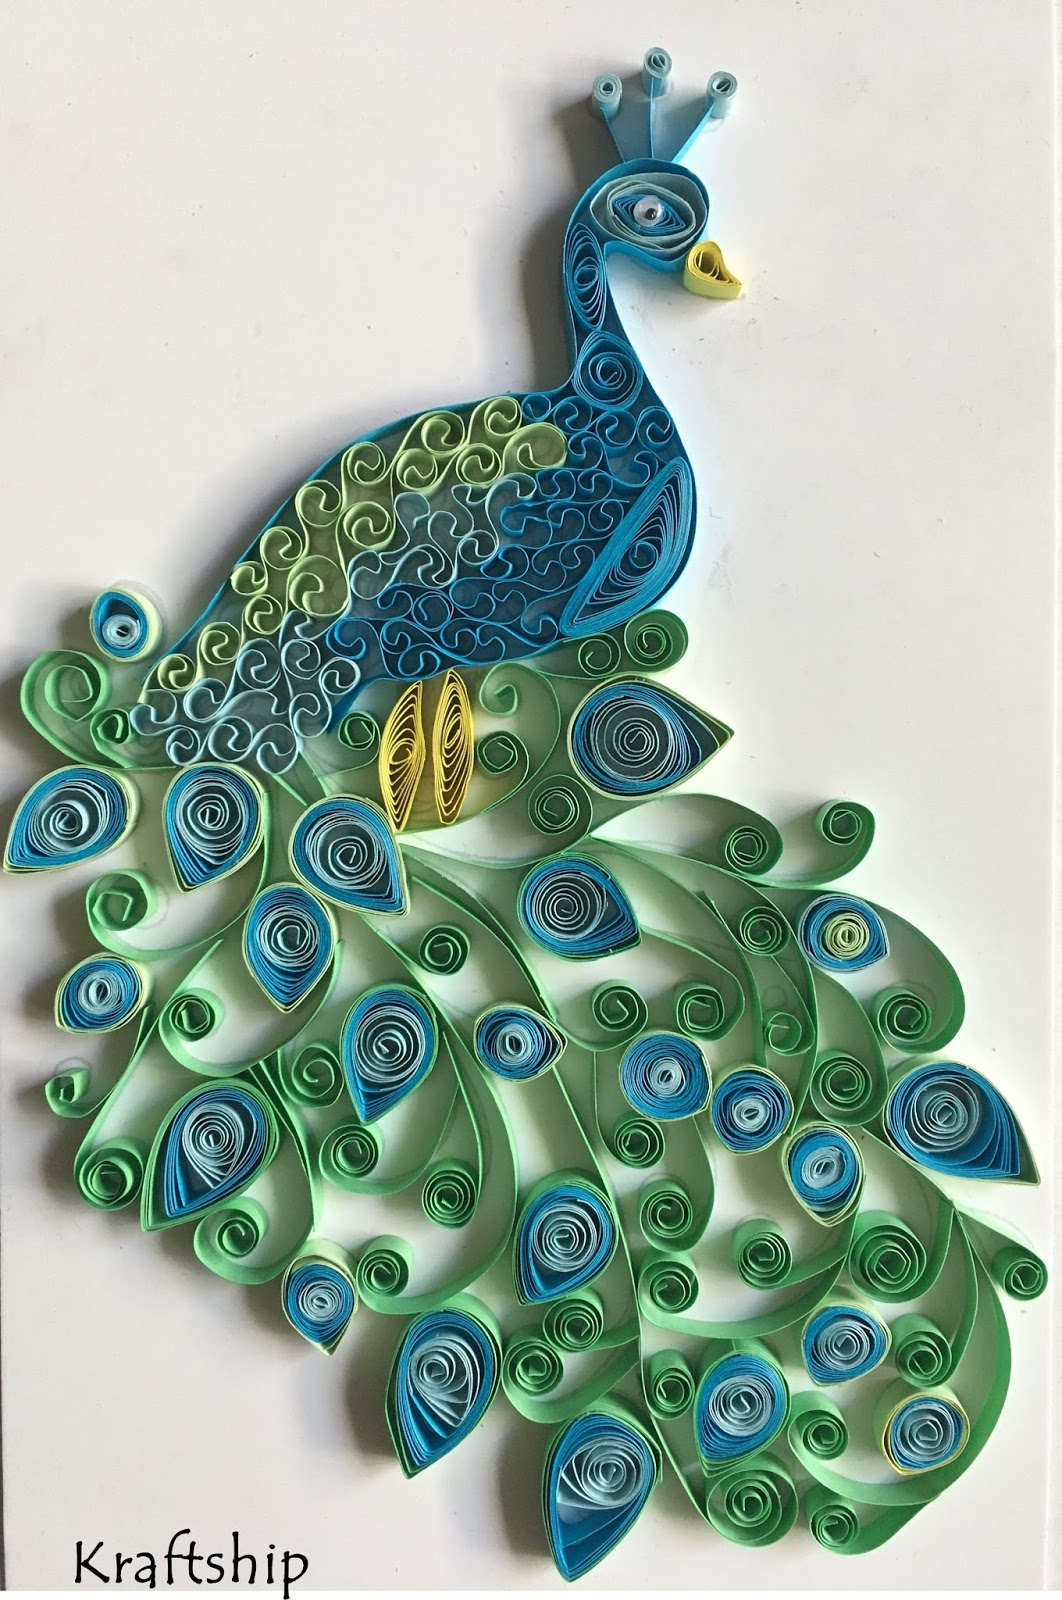 How to create Beautiful Peacock Paper Quilling Wall Art? & Kraftship: How to create Beautiful Peacock Paper Quilling Wall Art?